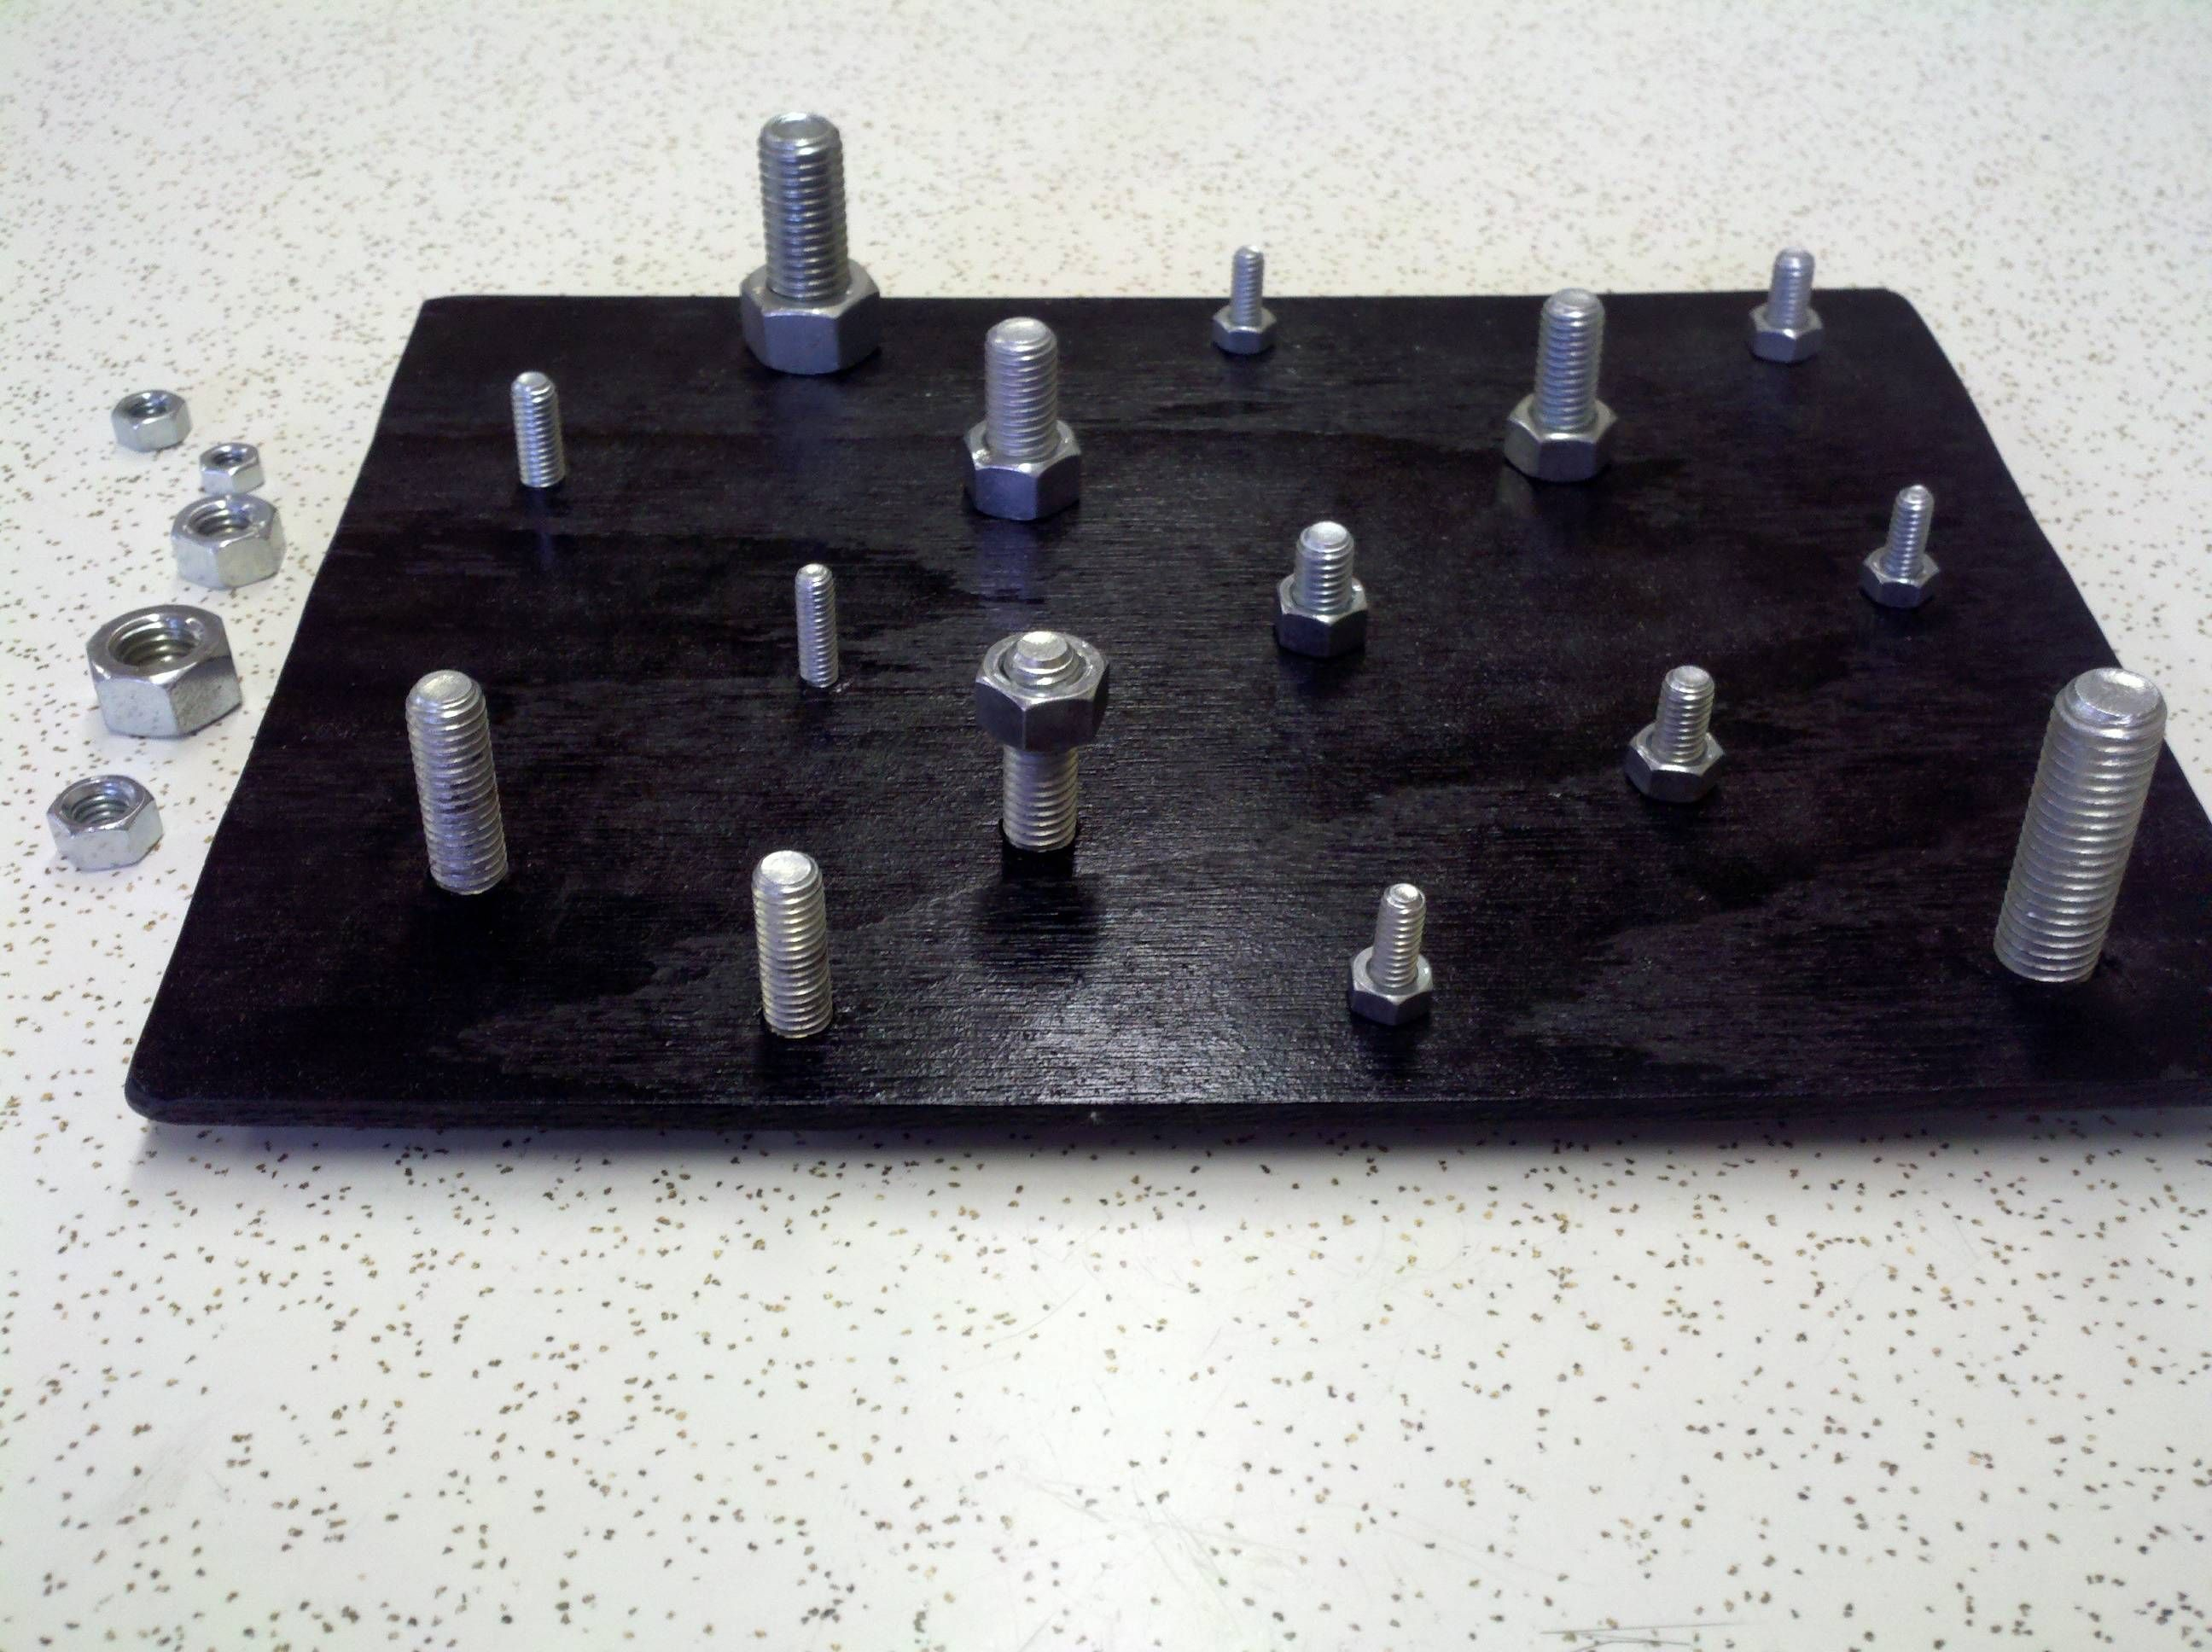 Fine Motor Occupational Therapy Activity Made With Painted Plywood Nuts Amp Bolts Cost Approx